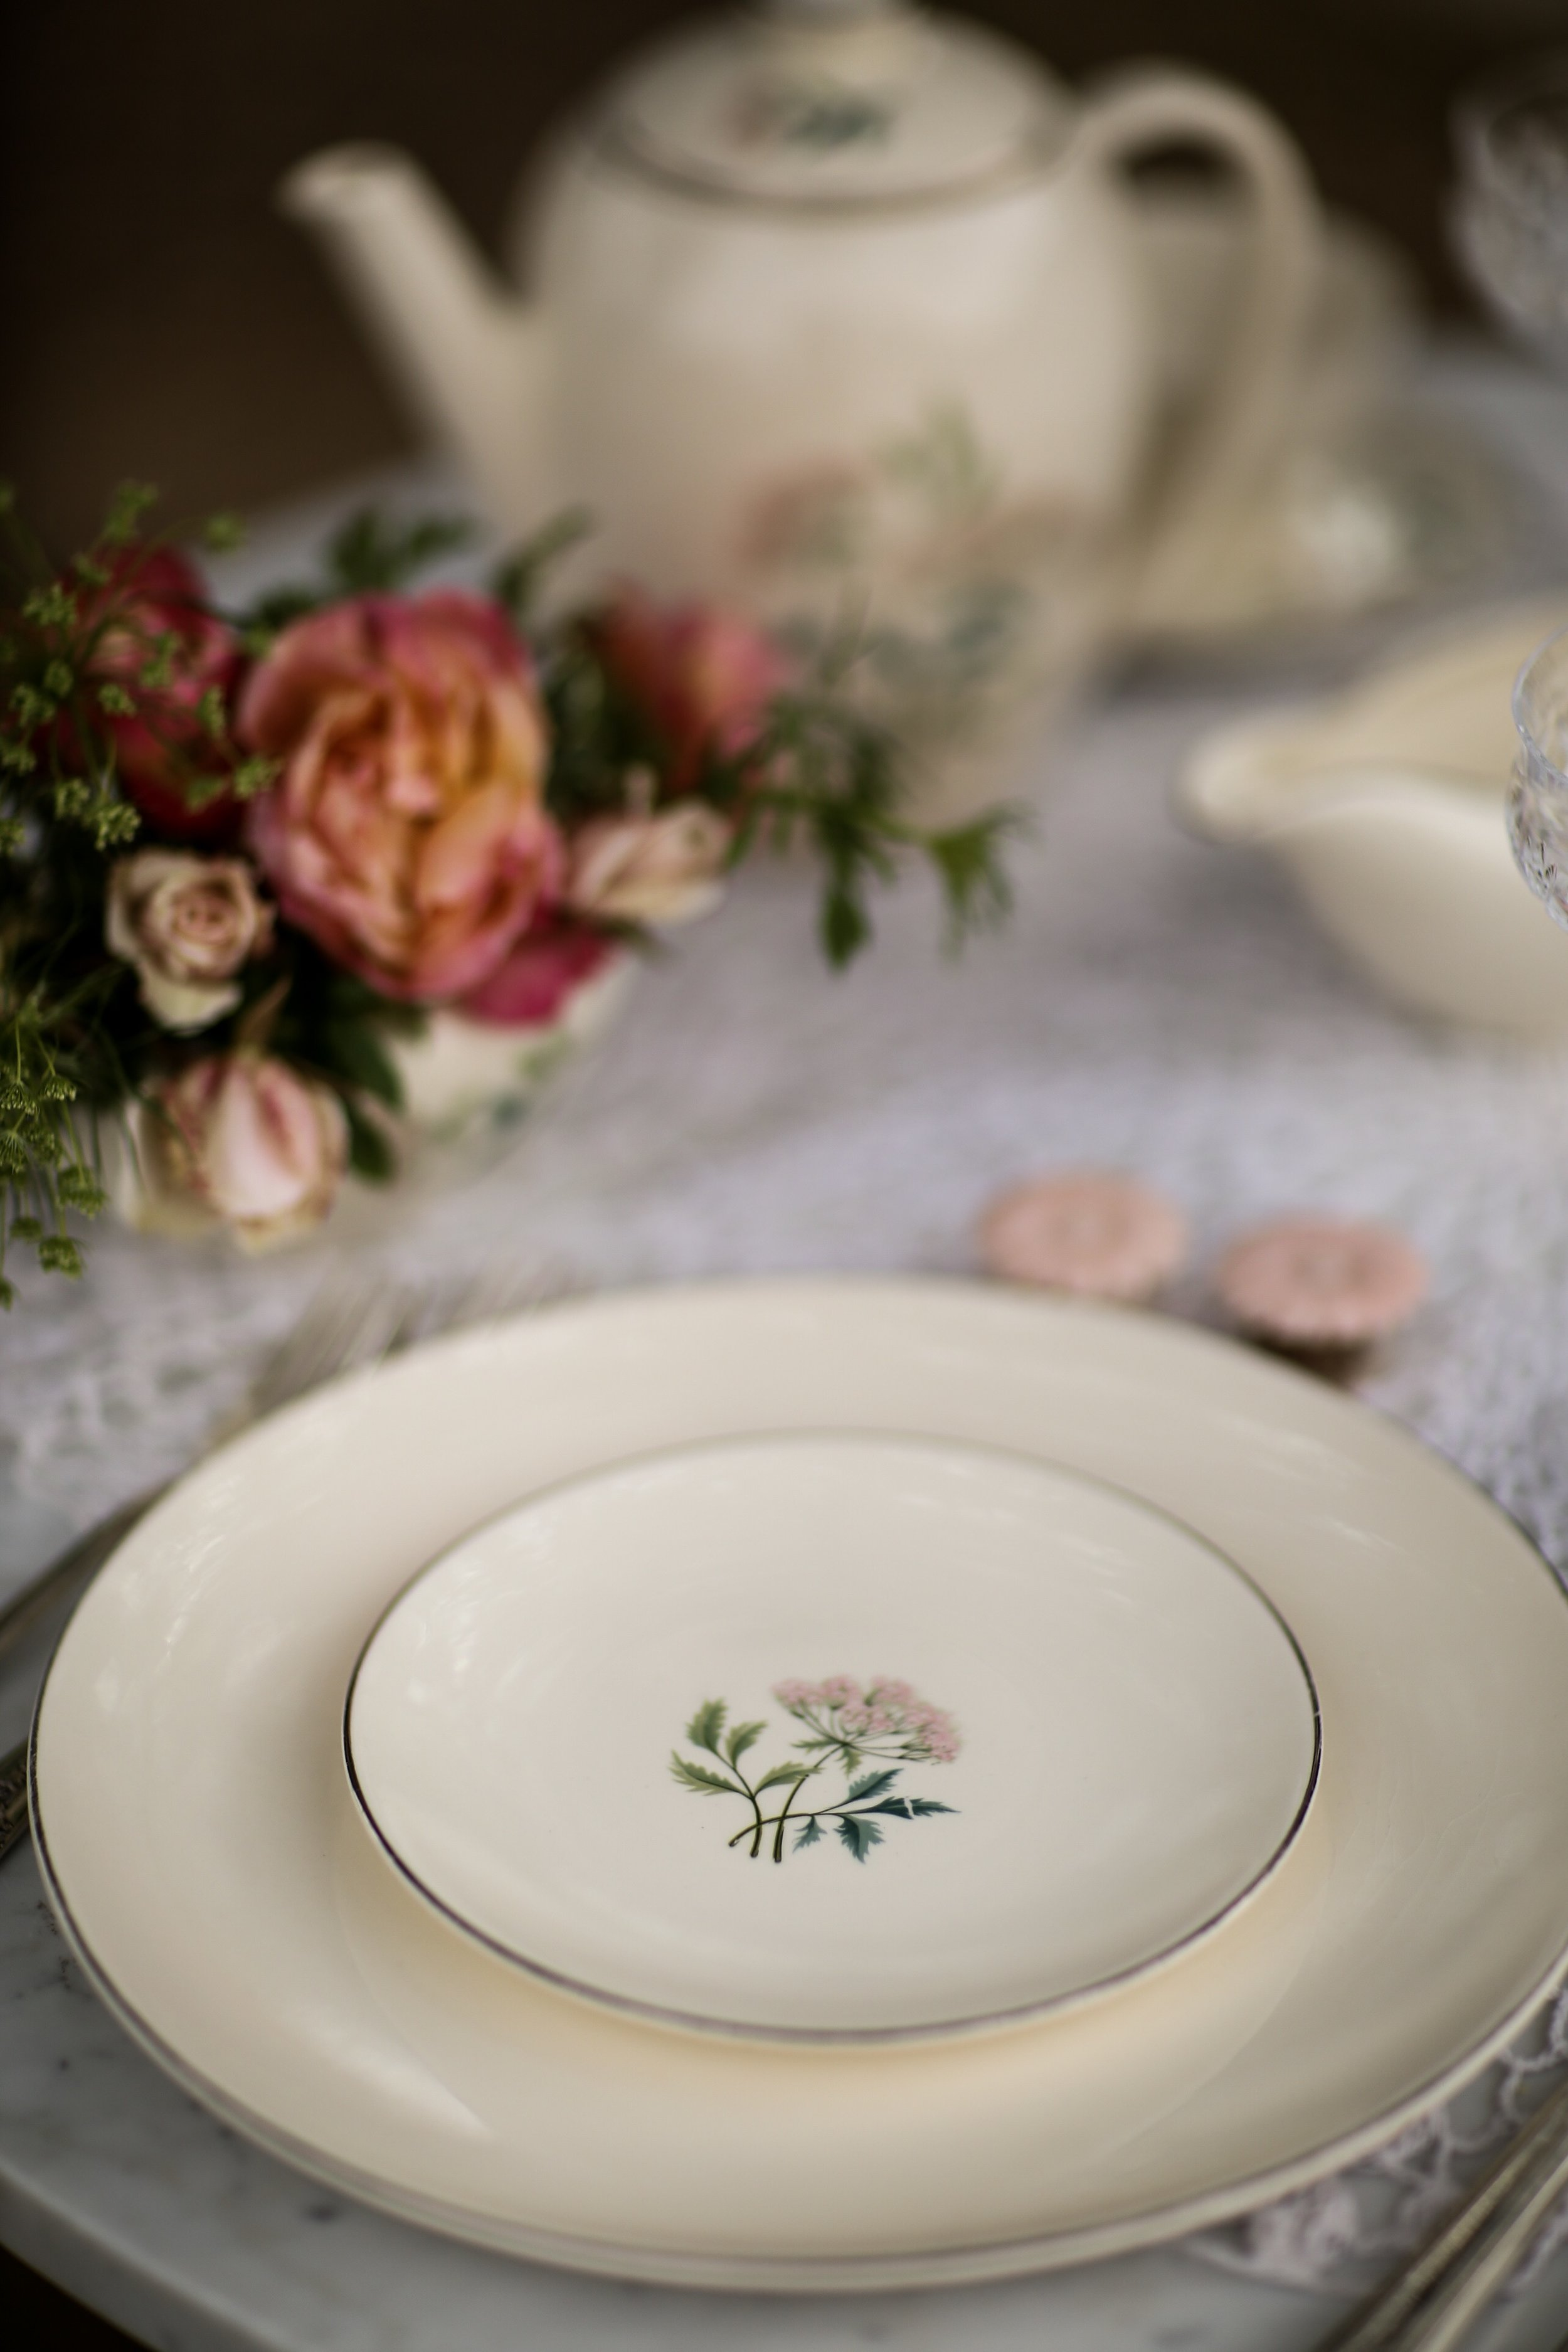 Ming Pattern of Homer Laughlin vintage china has a delicate pink flower with green stems. For rent.